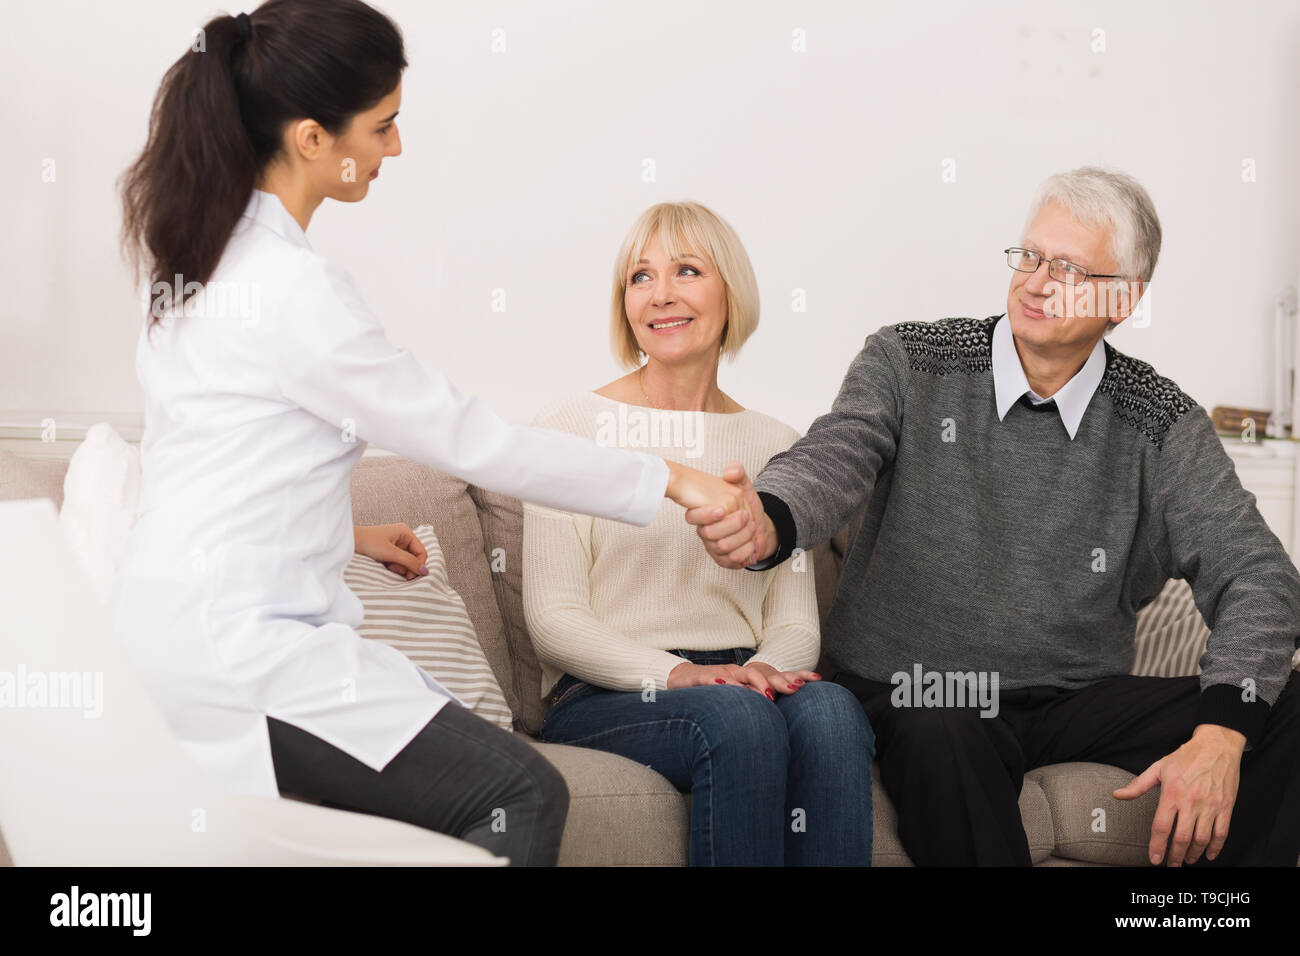 Mature Couple Welcoming Nurse During Home Visit - Stock Image